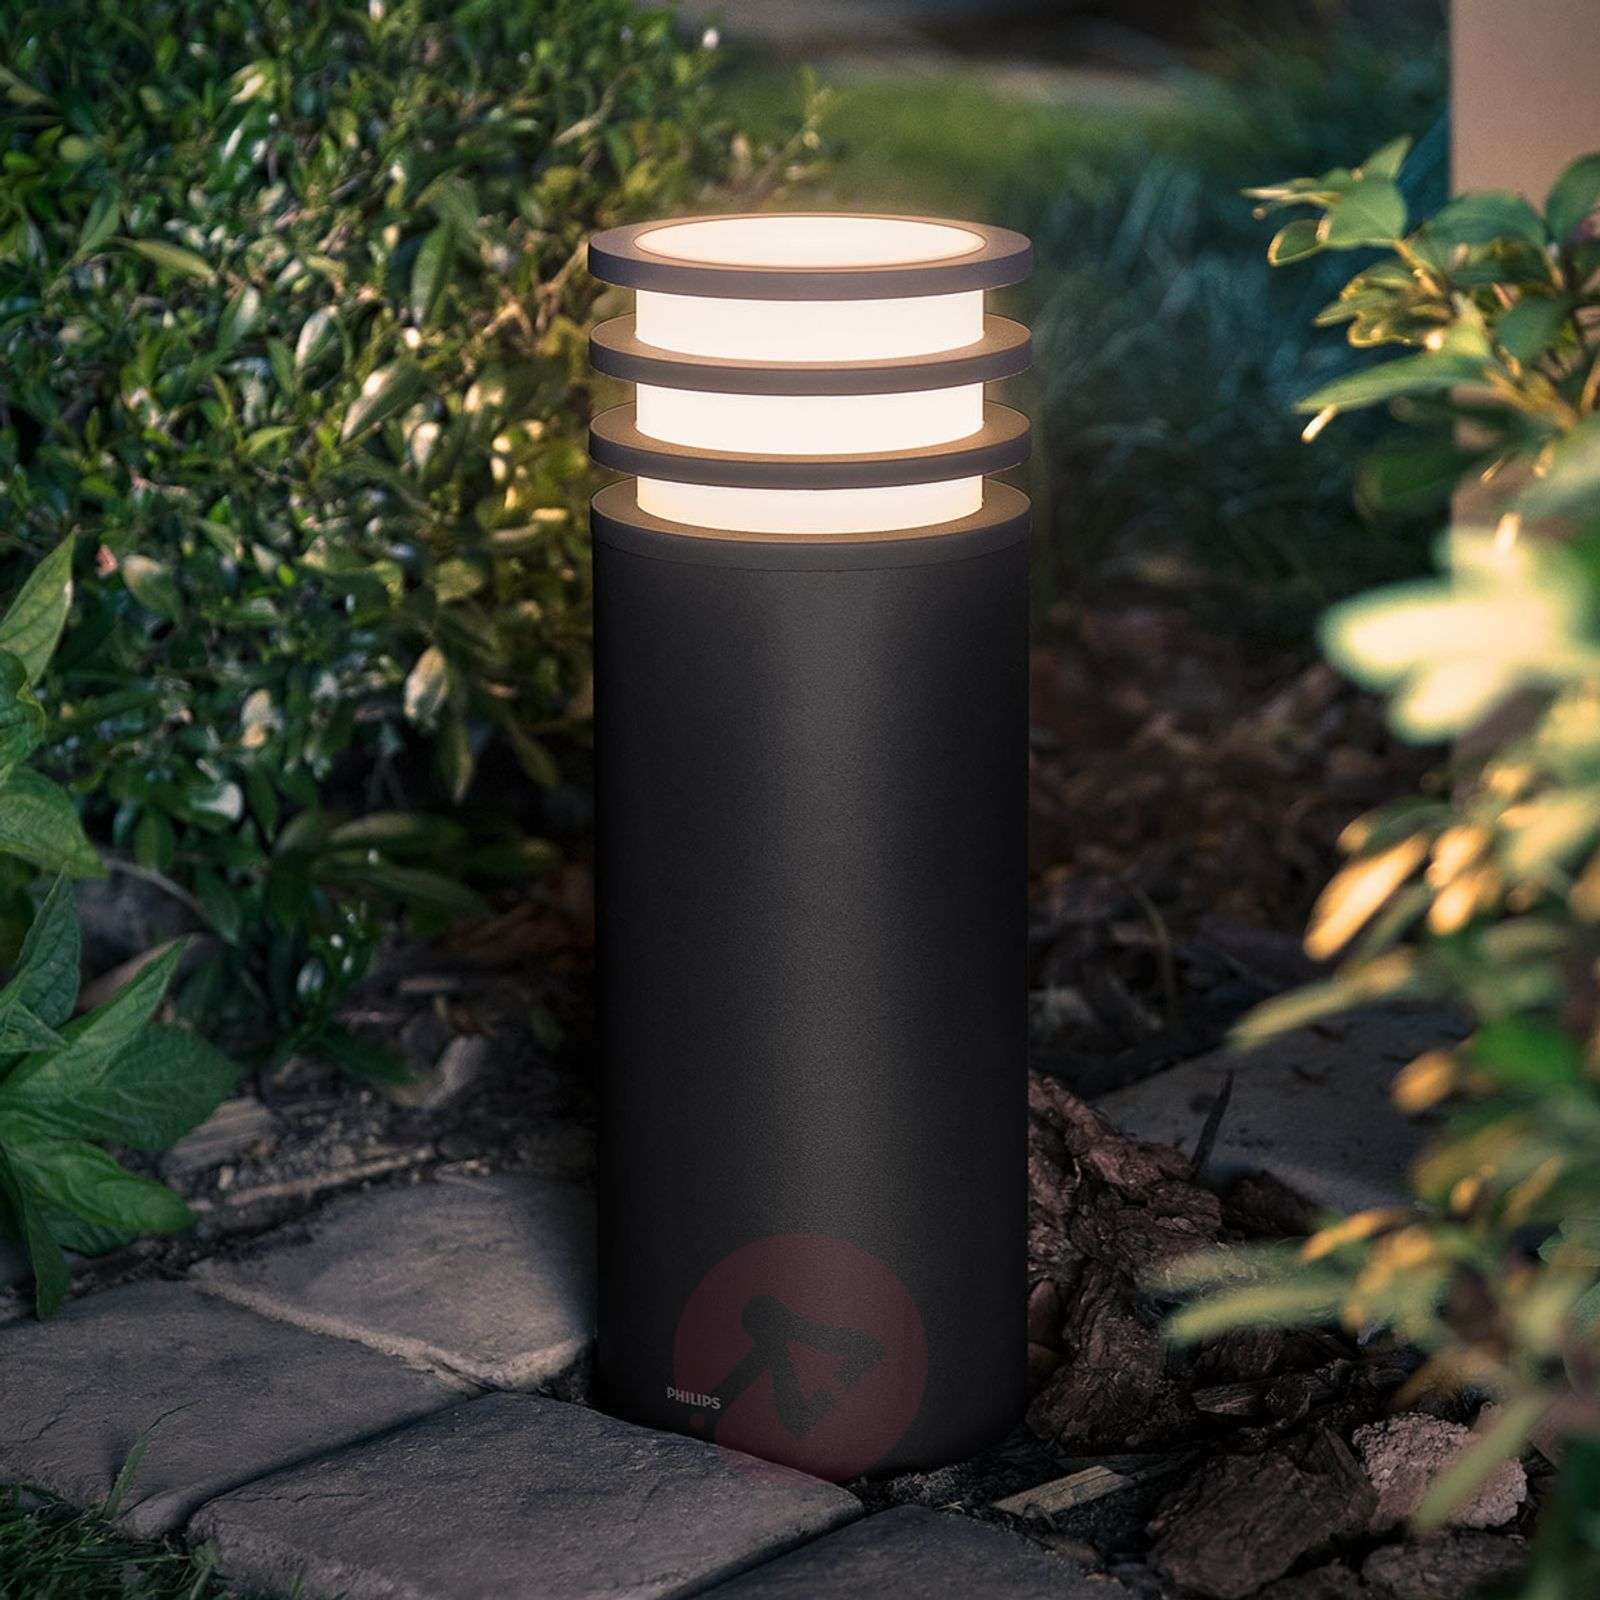 Philips Hue Lucca LED pillar light, app control-7534049-01